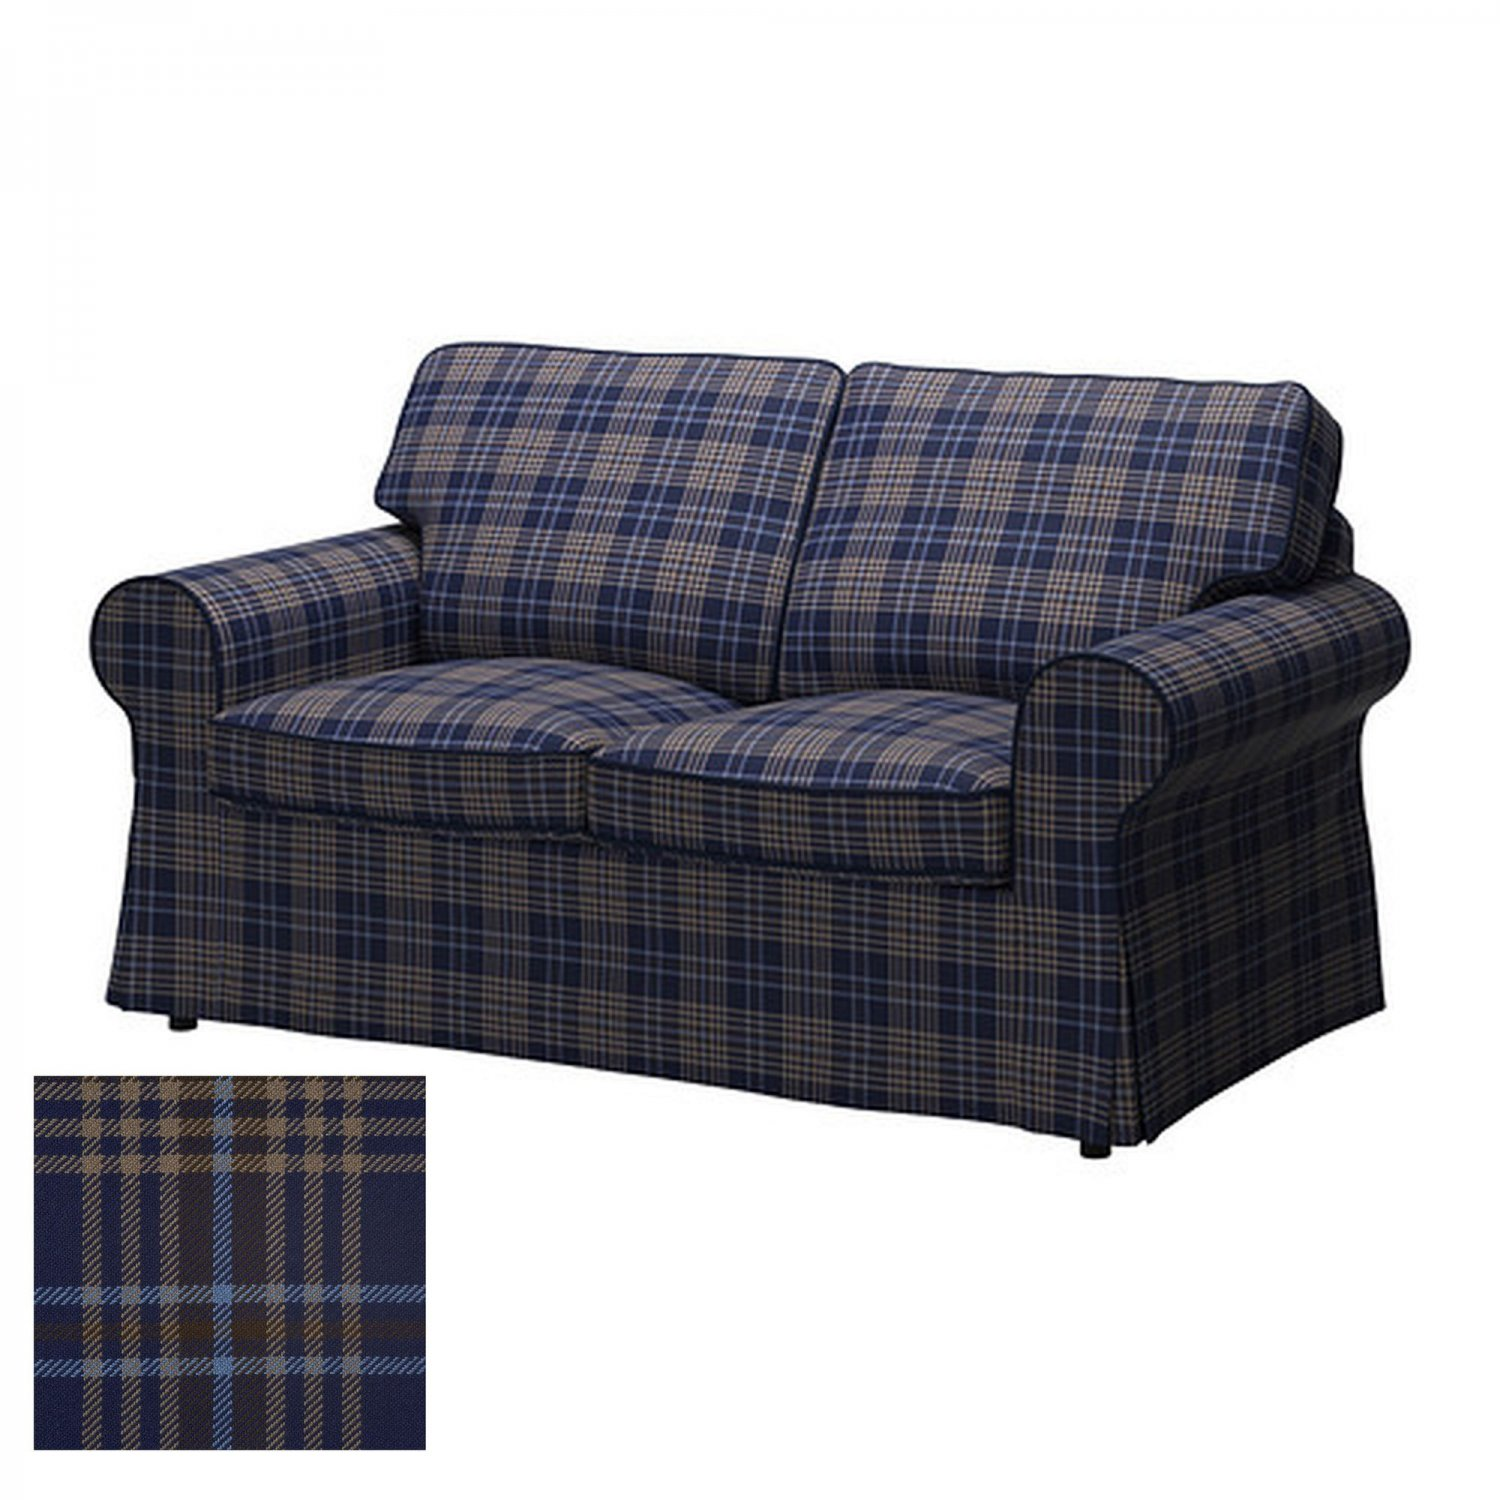 Image Result For Country Plaid Sofa Covers